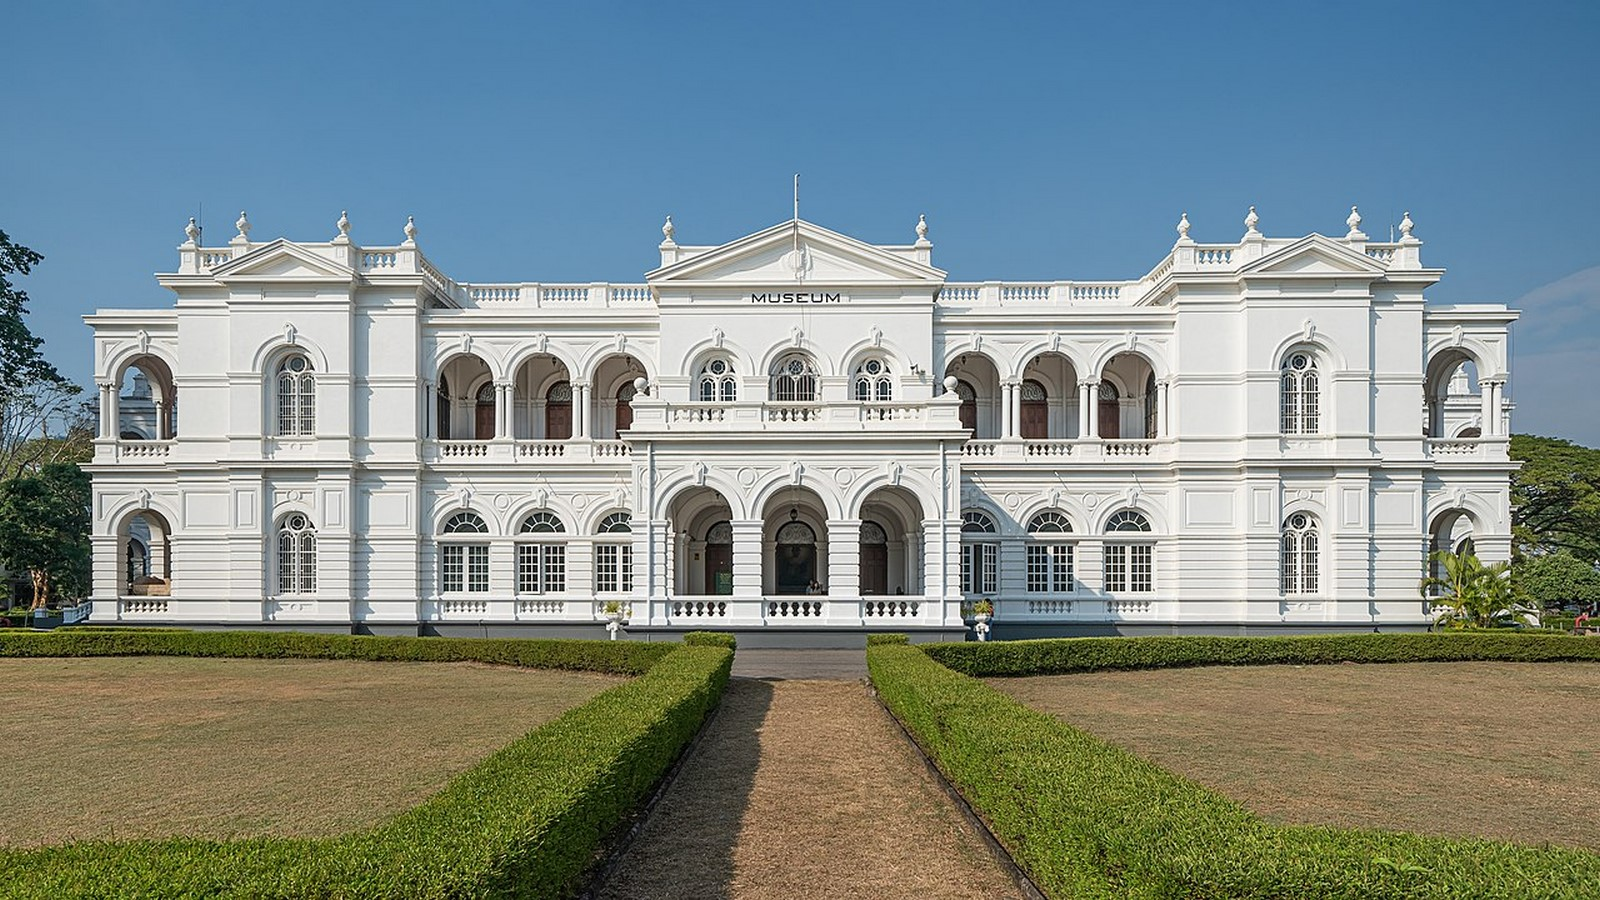 Architecture of Cities: Colombo: Fastest-growing city in the world - Sheet4